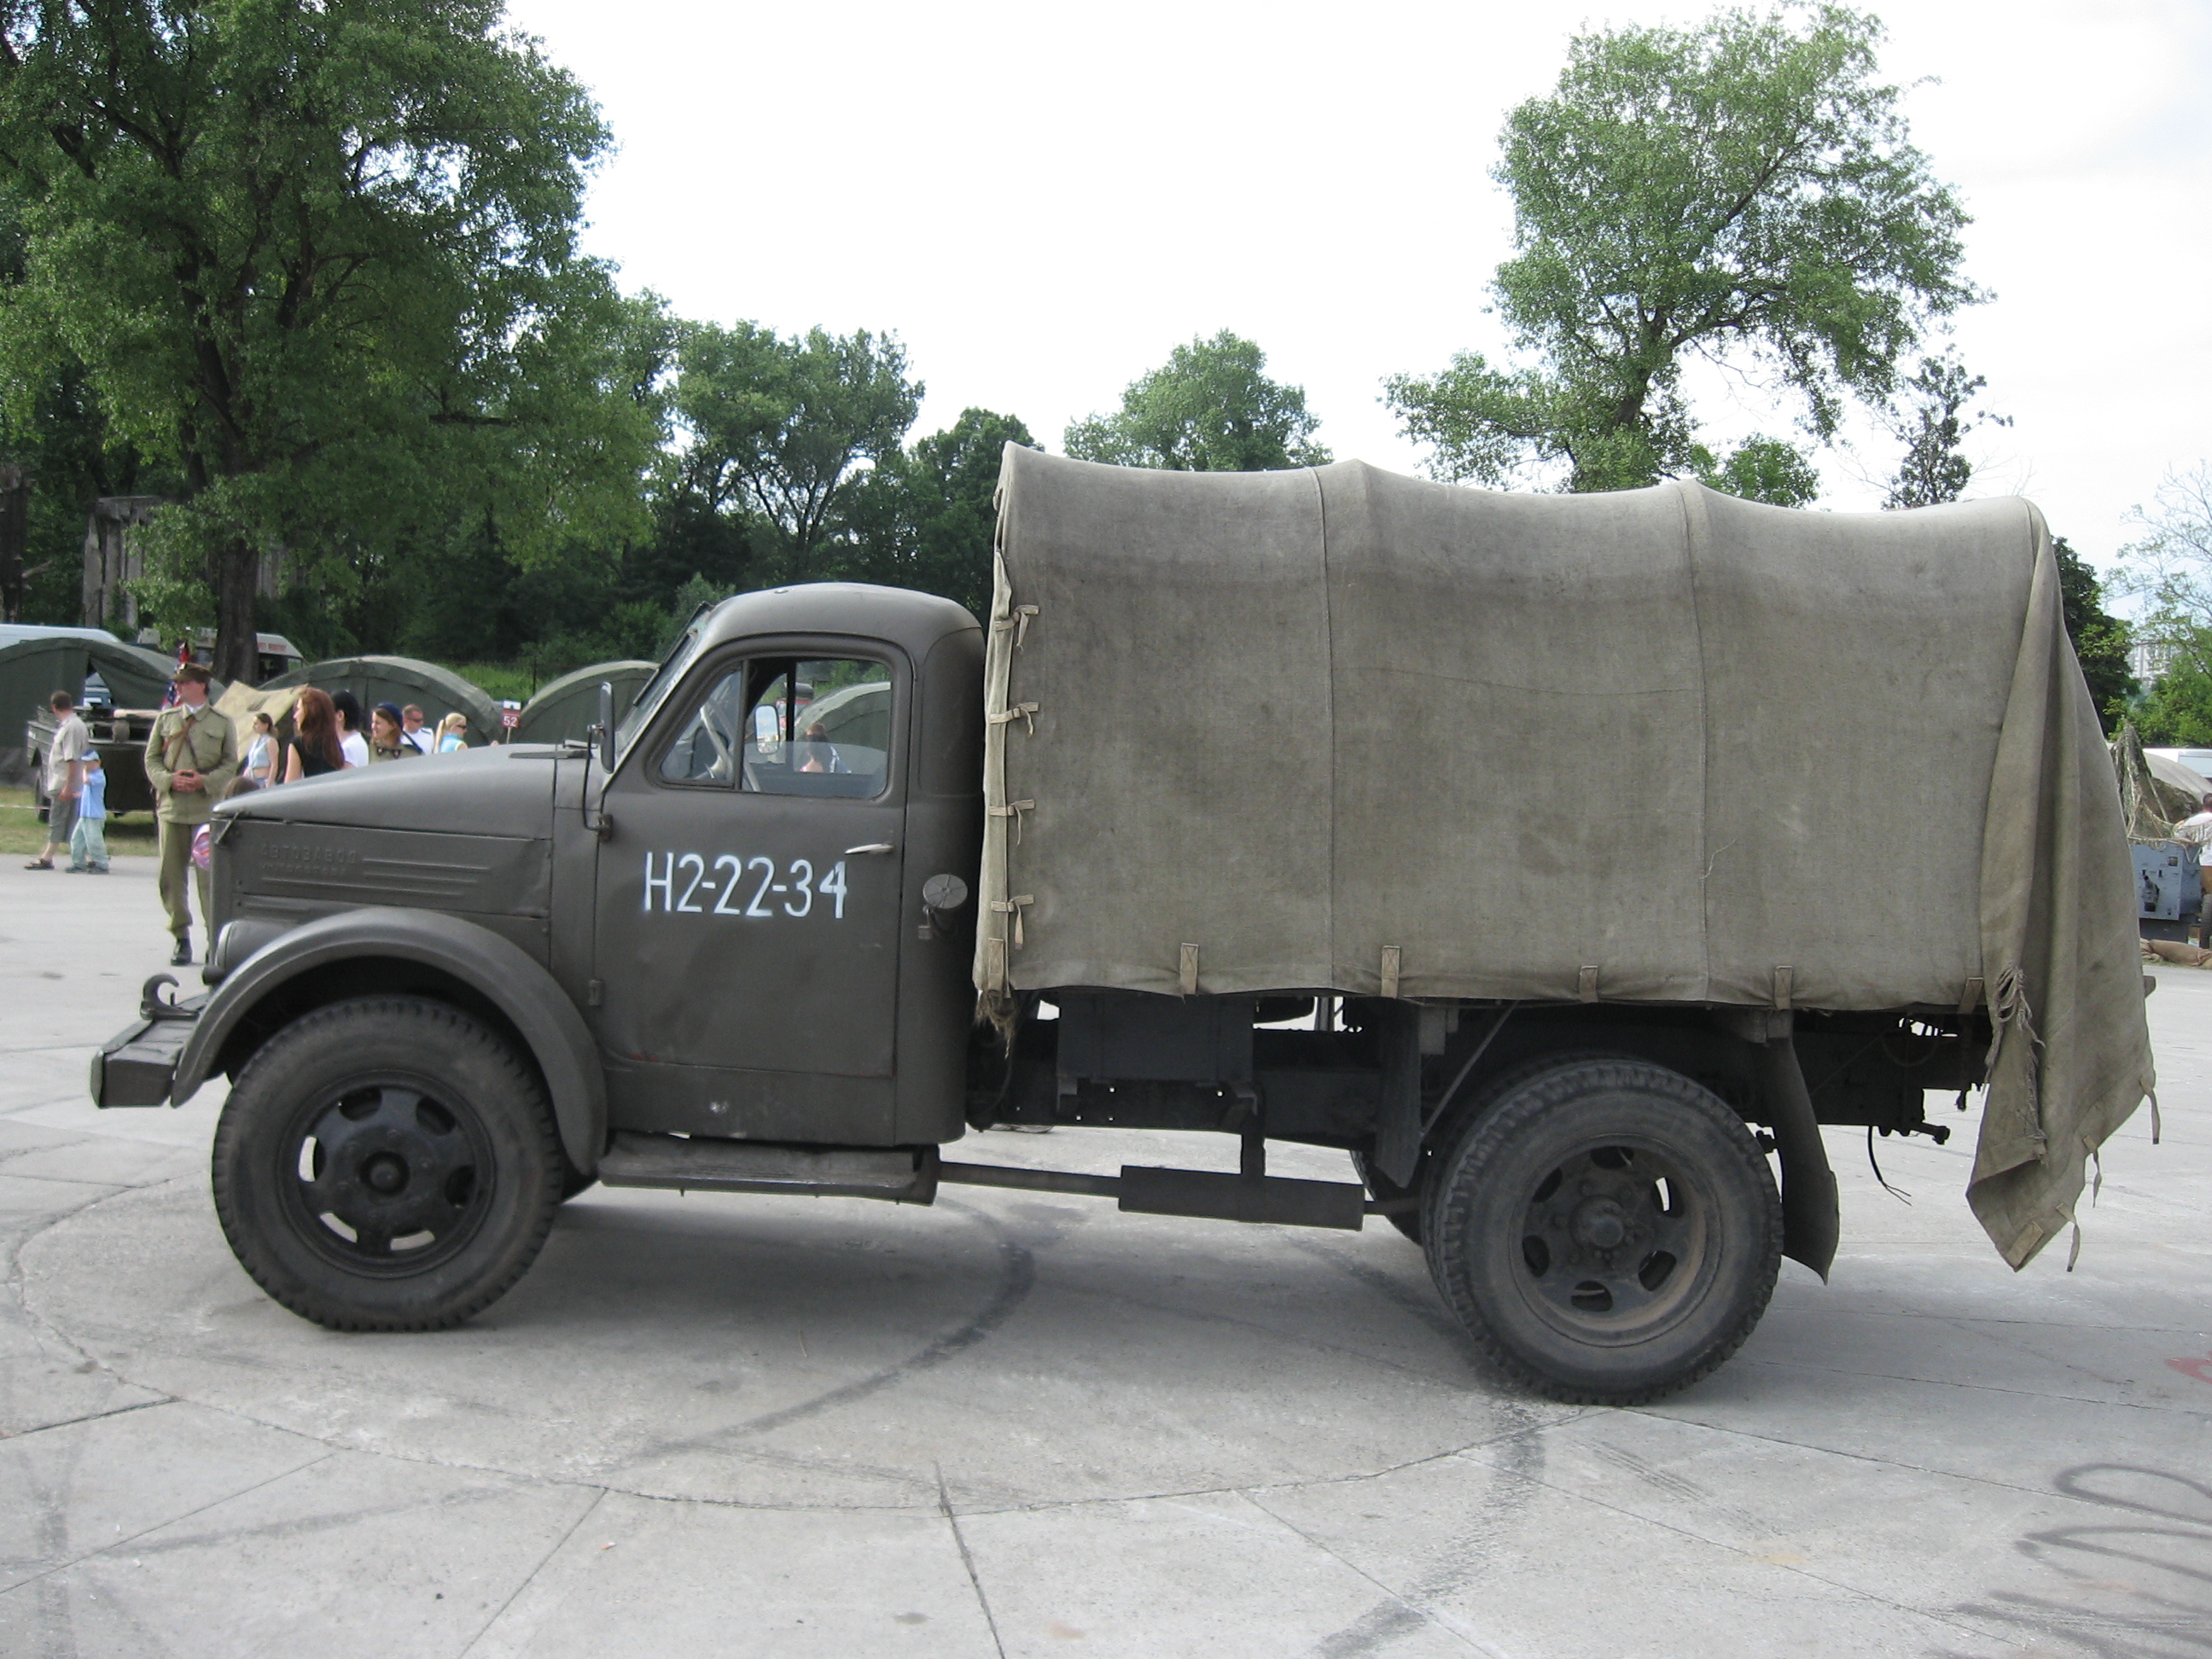 File:GAZ-51 during the VII Aircraft Picnic in Kraków (1).jpg ...